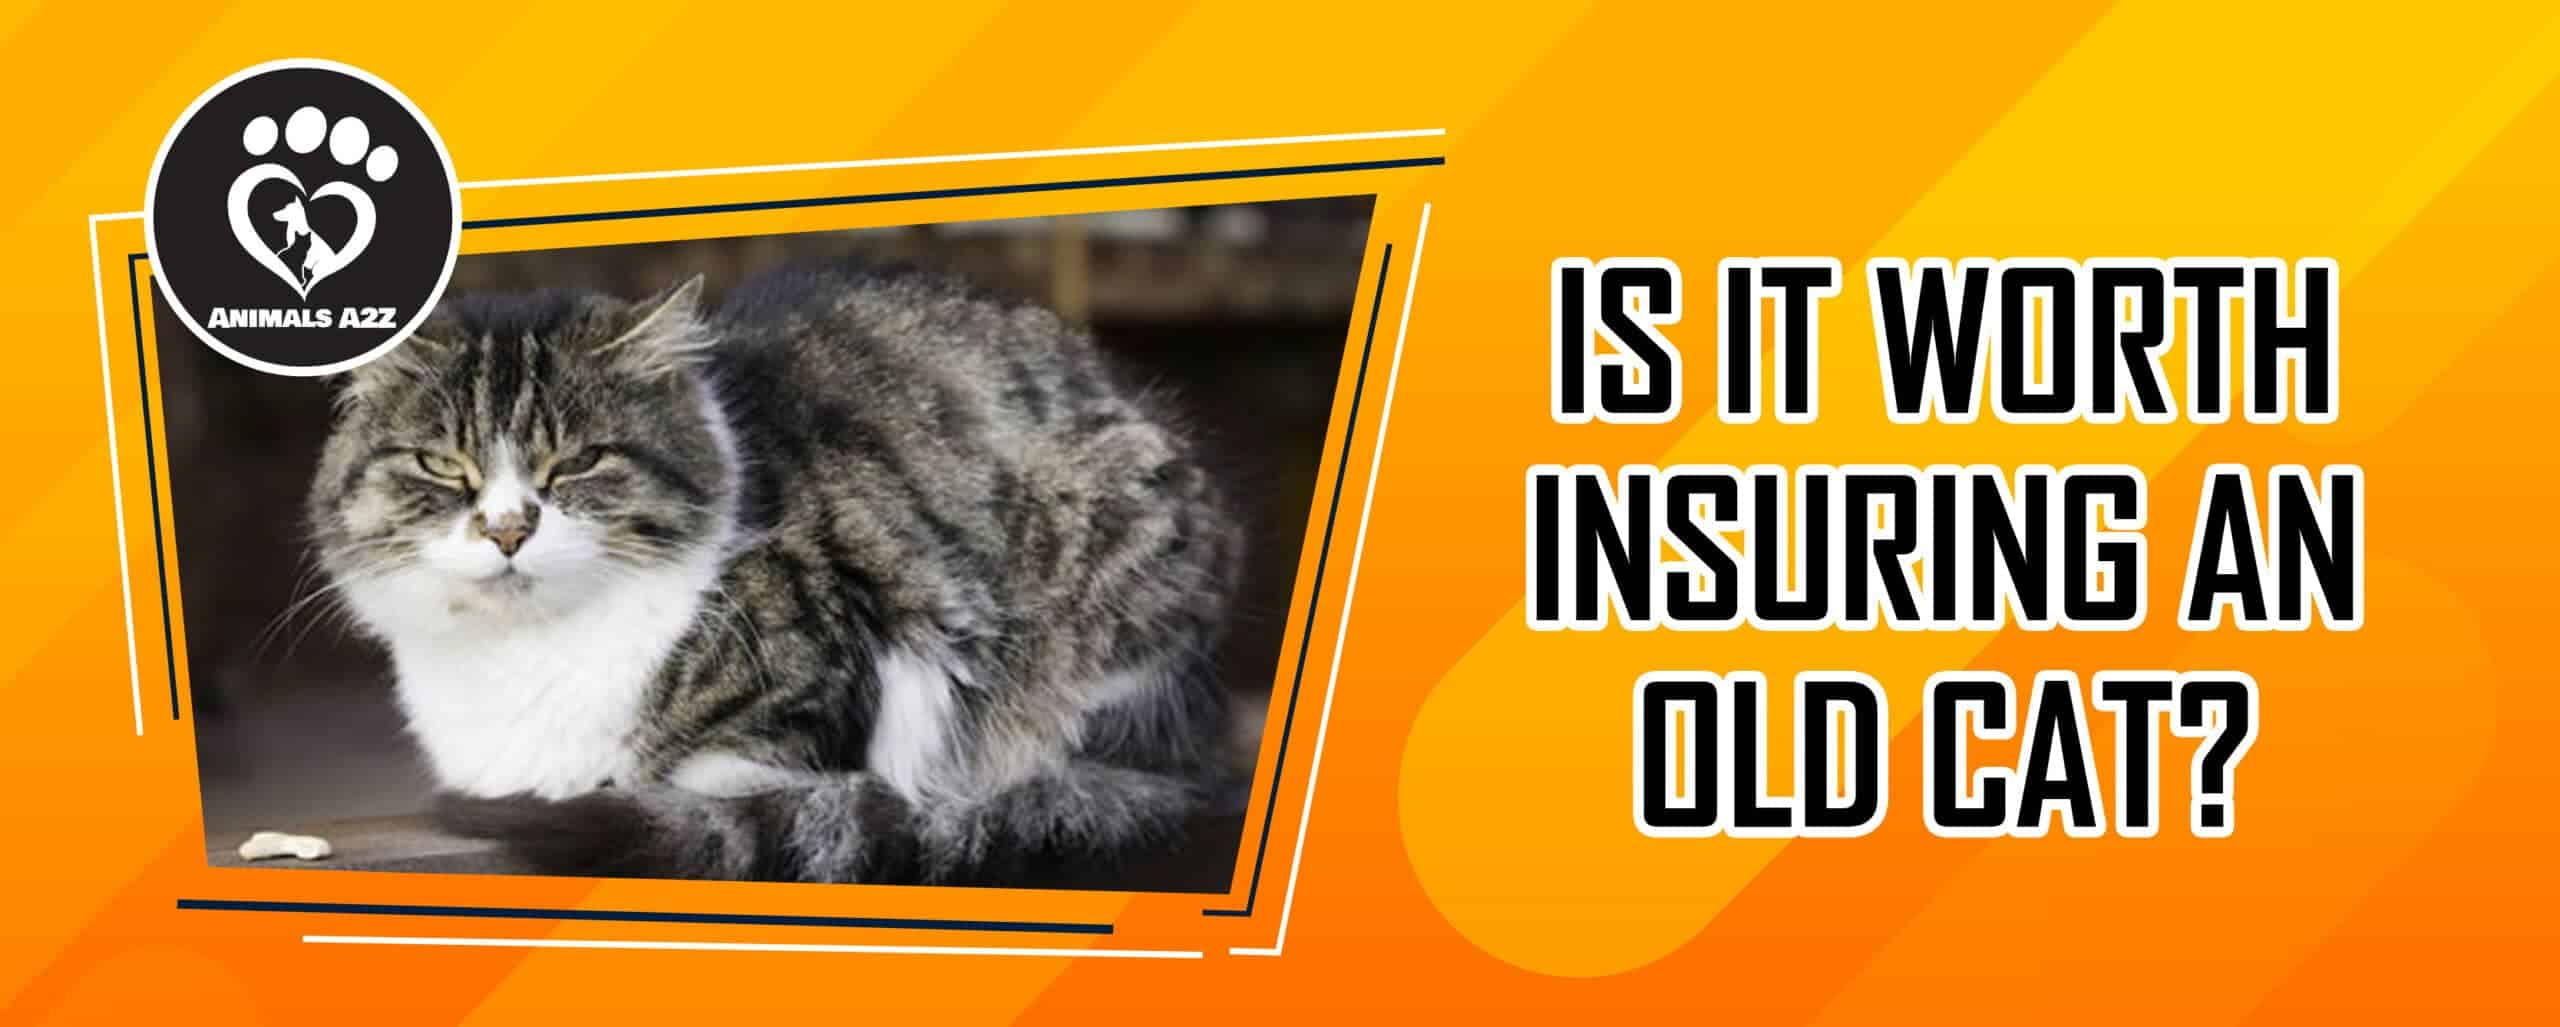 Is it worth insuring an old cat?